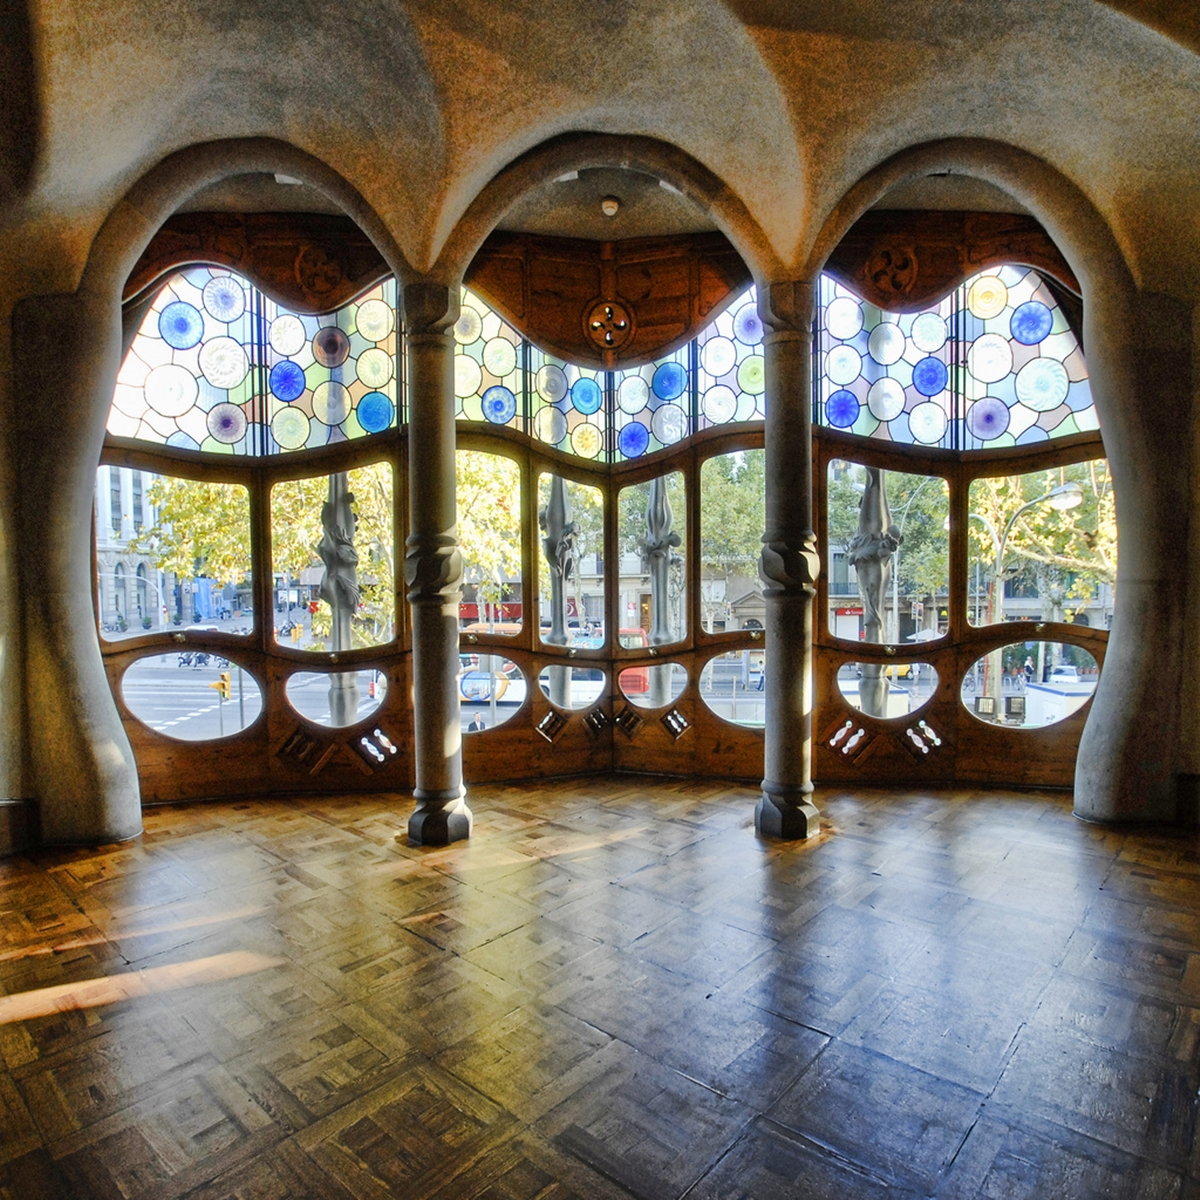 10 beautiful places originally from tales 14